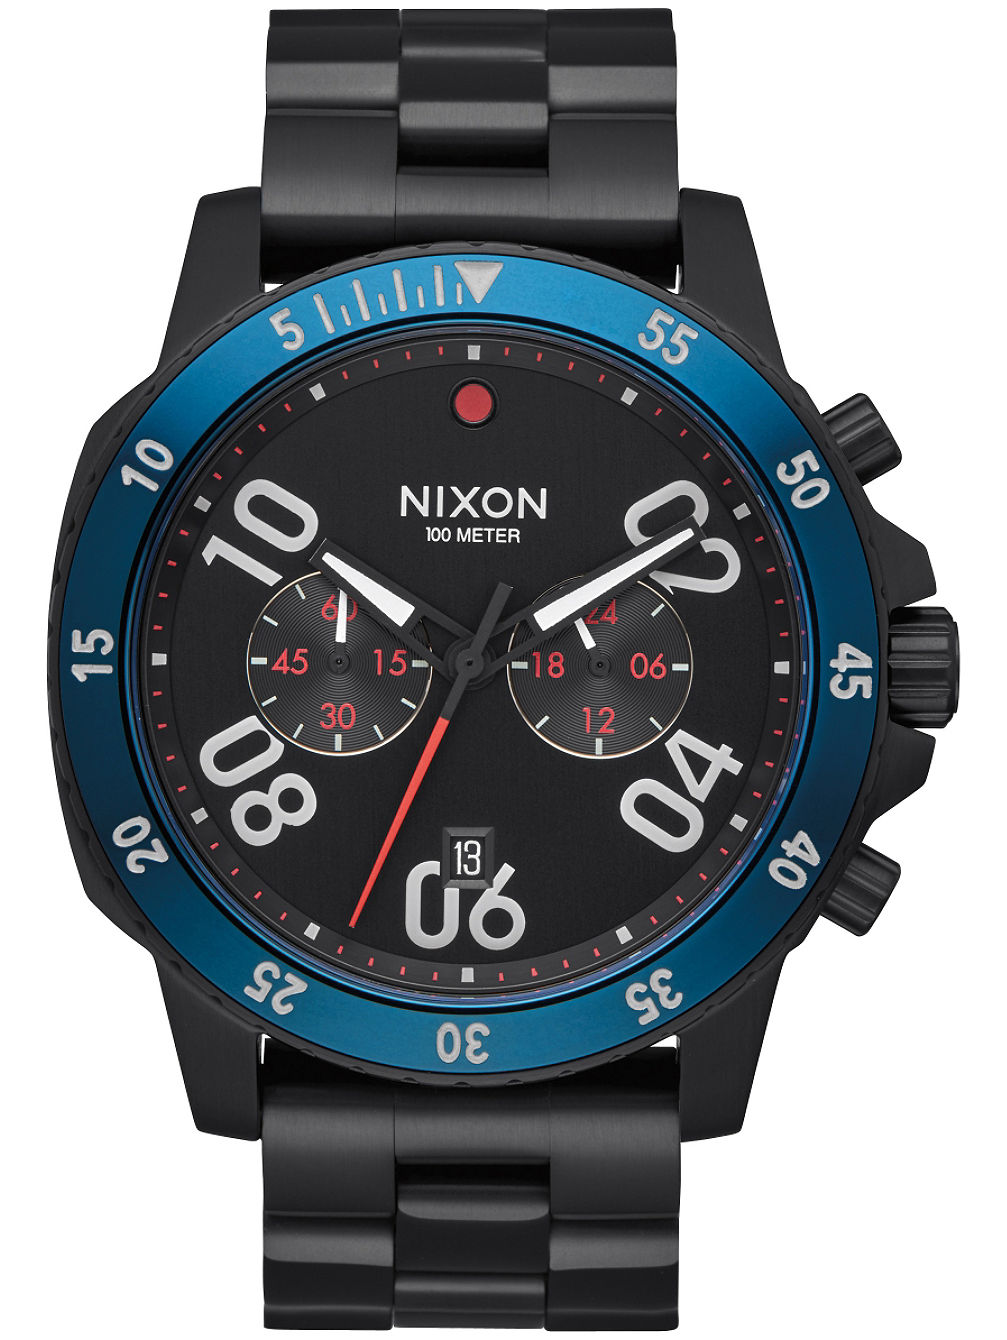 The Ranger Chrono